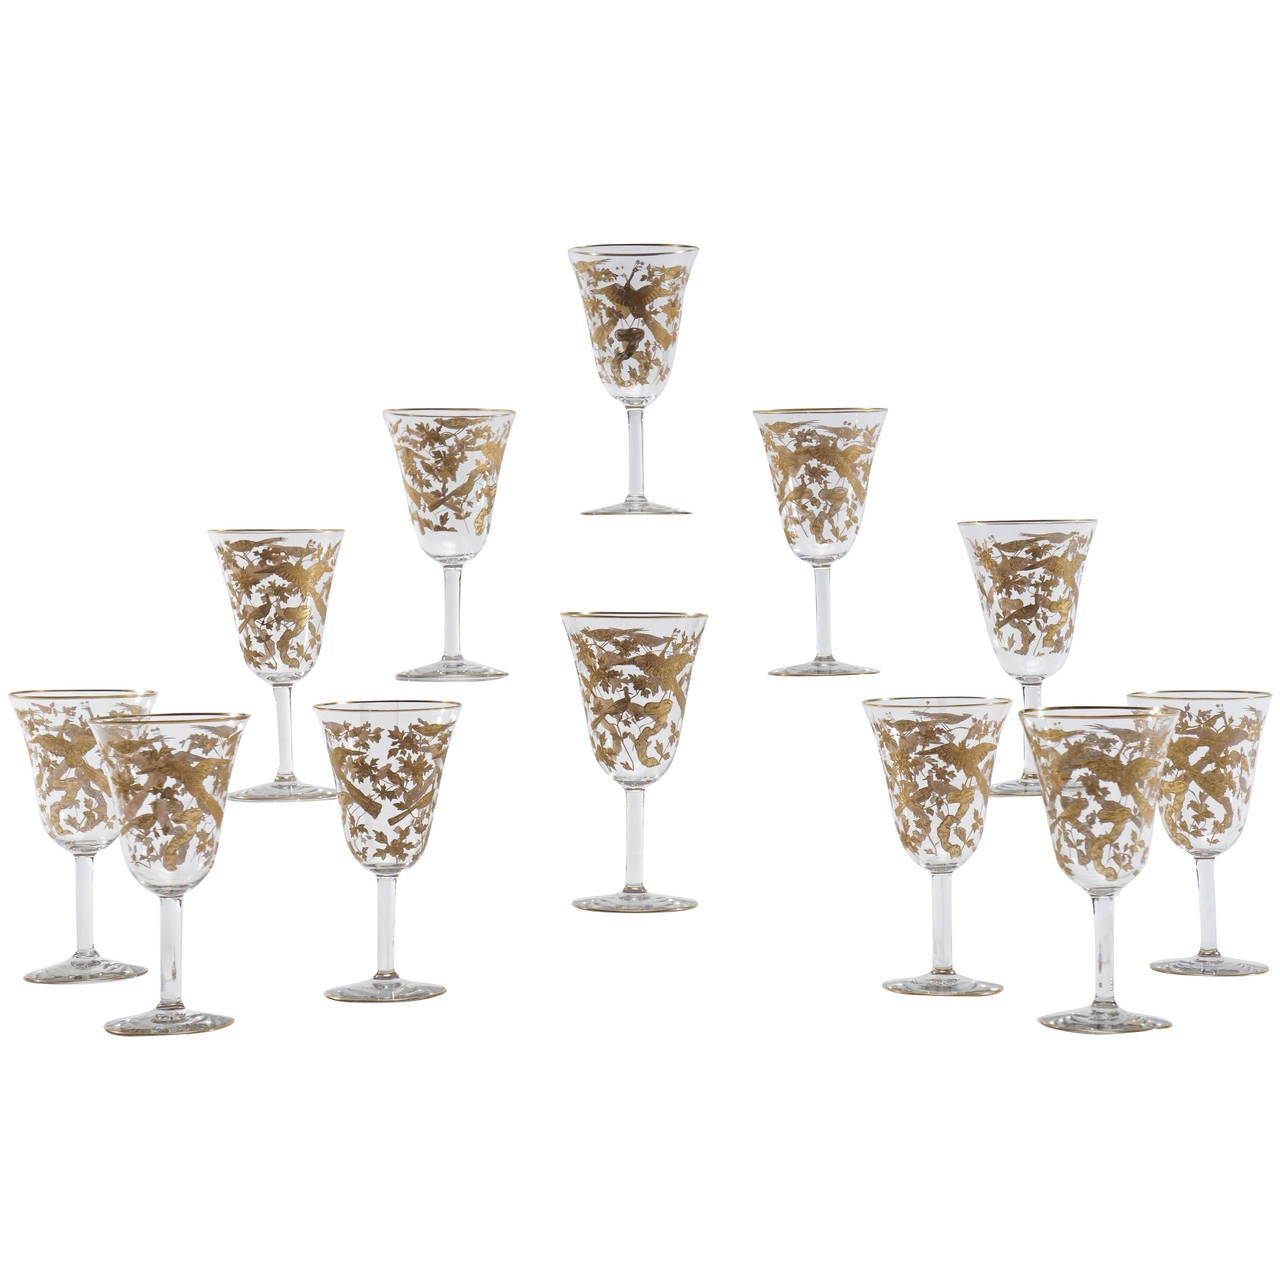 12 baccarat crystal wine goblets intaglio cut with gilded exotic bird motifs for sale at 1stdibs - Baccarat stemware ...